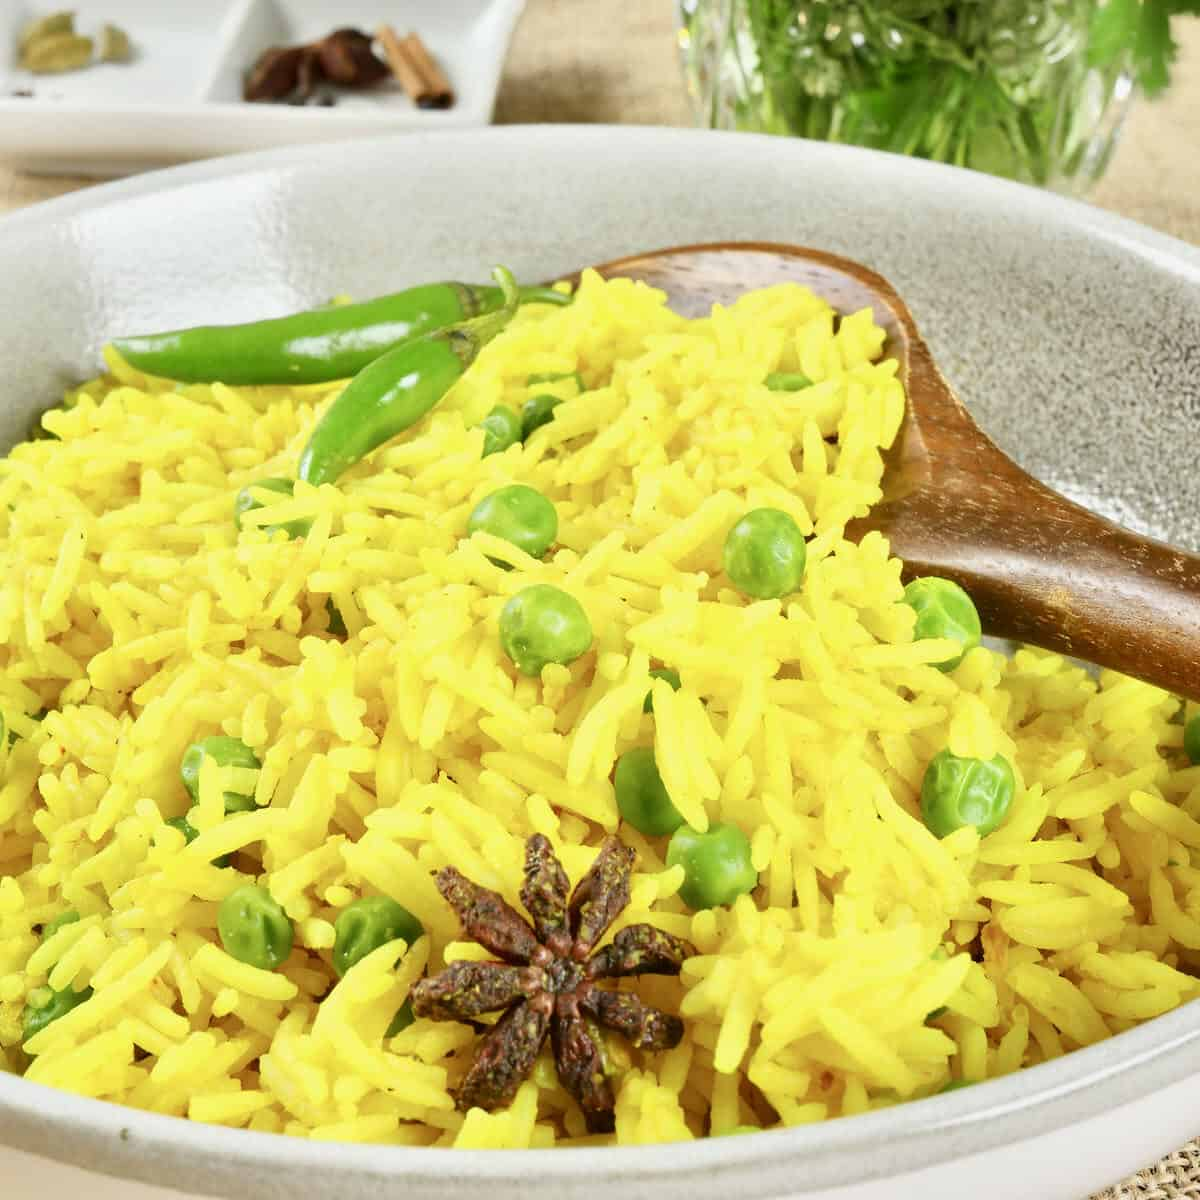 Goan=spiced rice is inished cooking in a dutch oven, ready for serving.